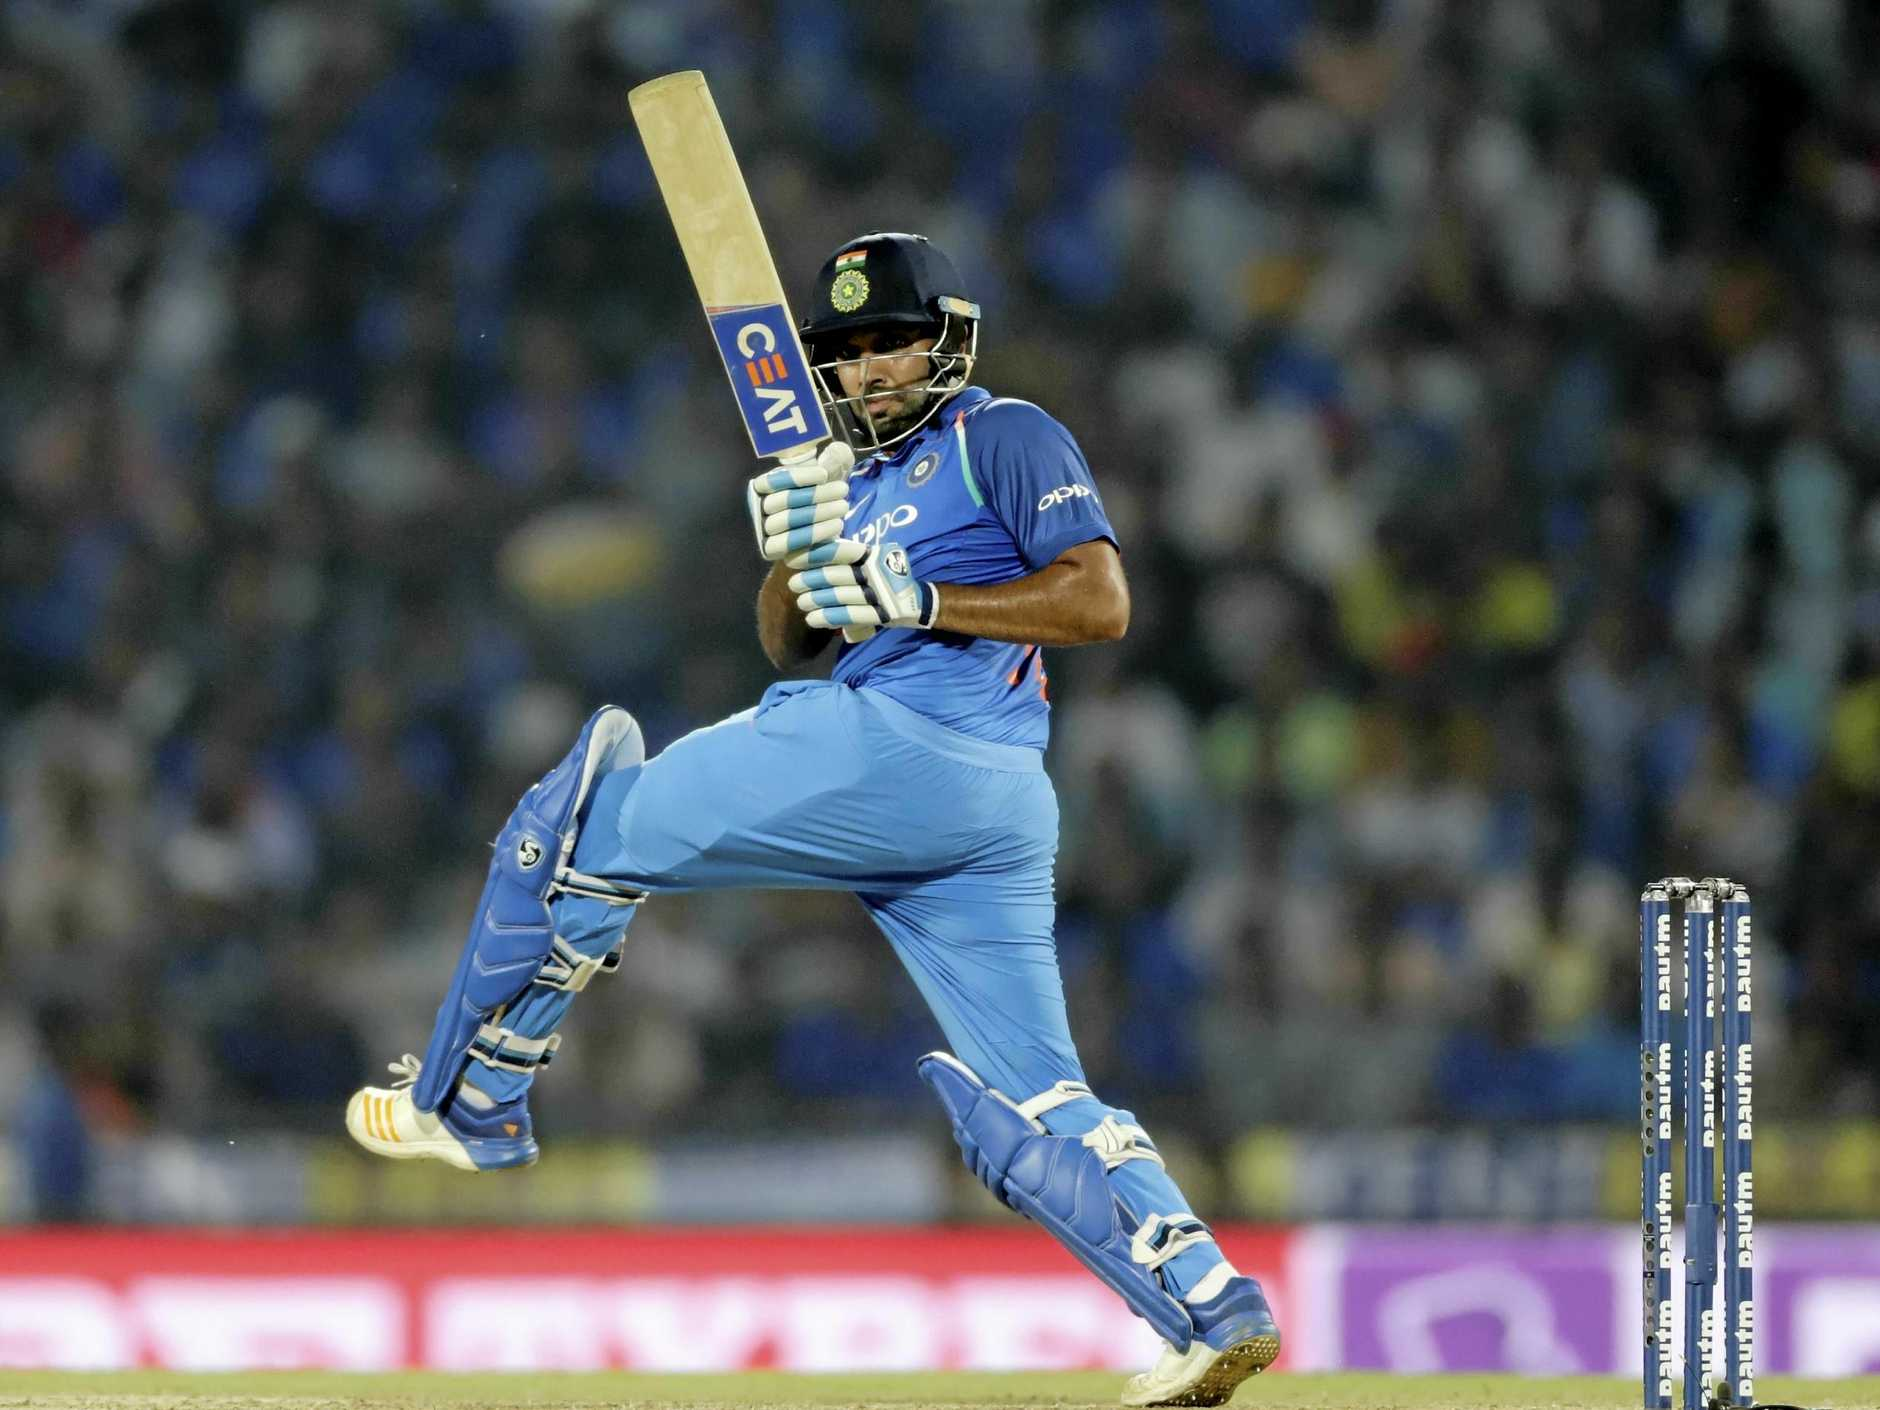 Rohit Sharma on his way to a century against Australia.